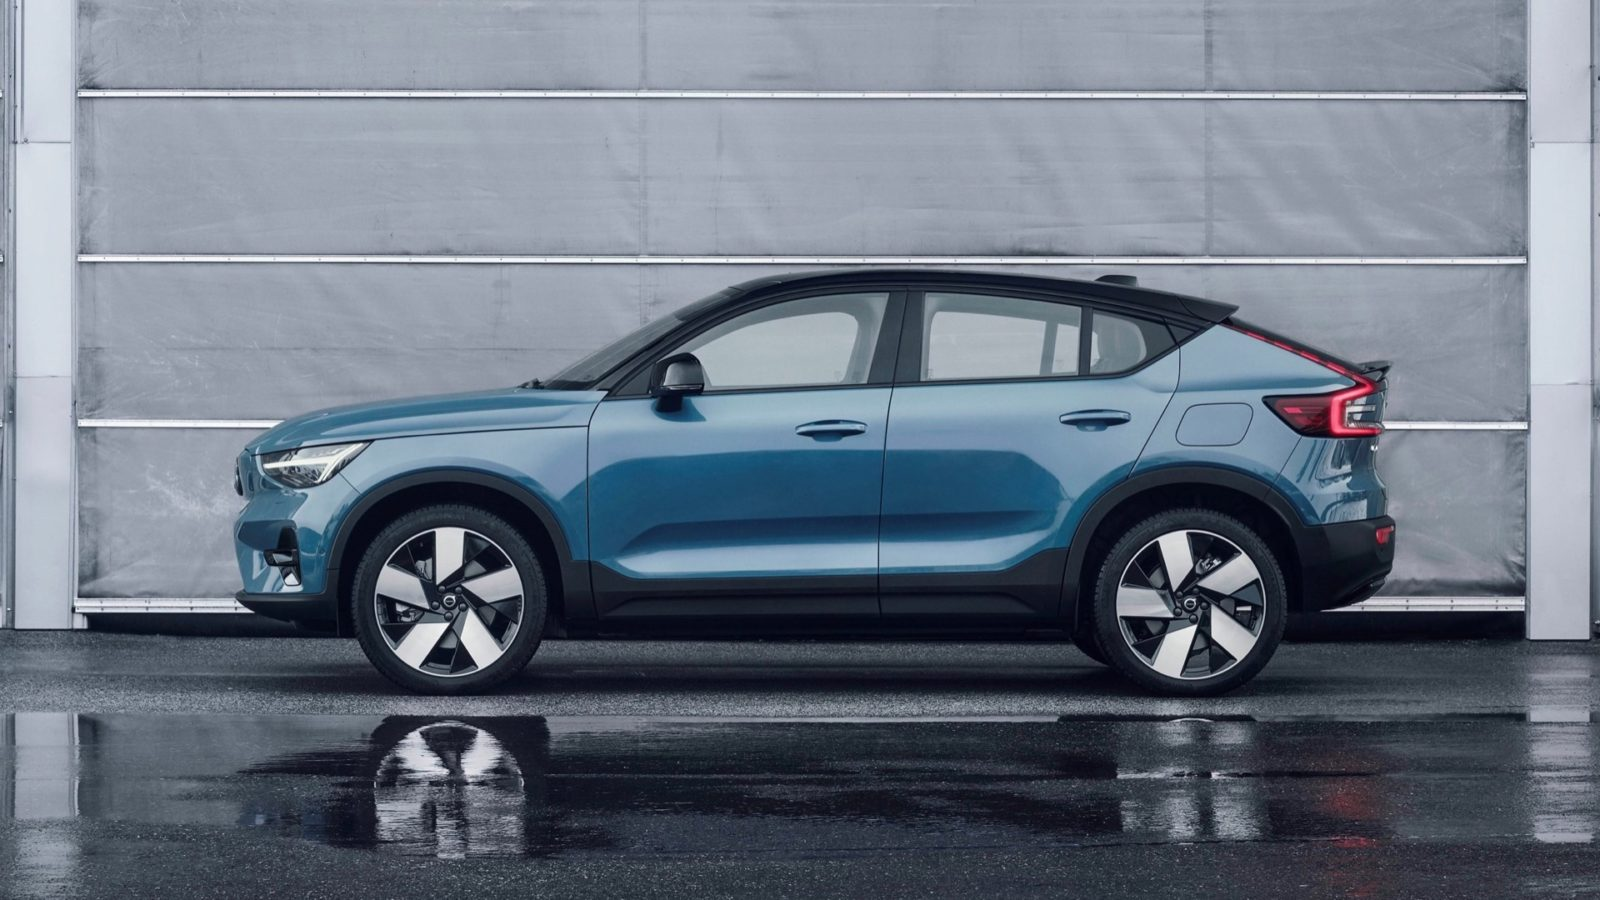 2022-volvo-c40-recharge-debuts-as-automaker's-first-electric-only-model-for-$59,845